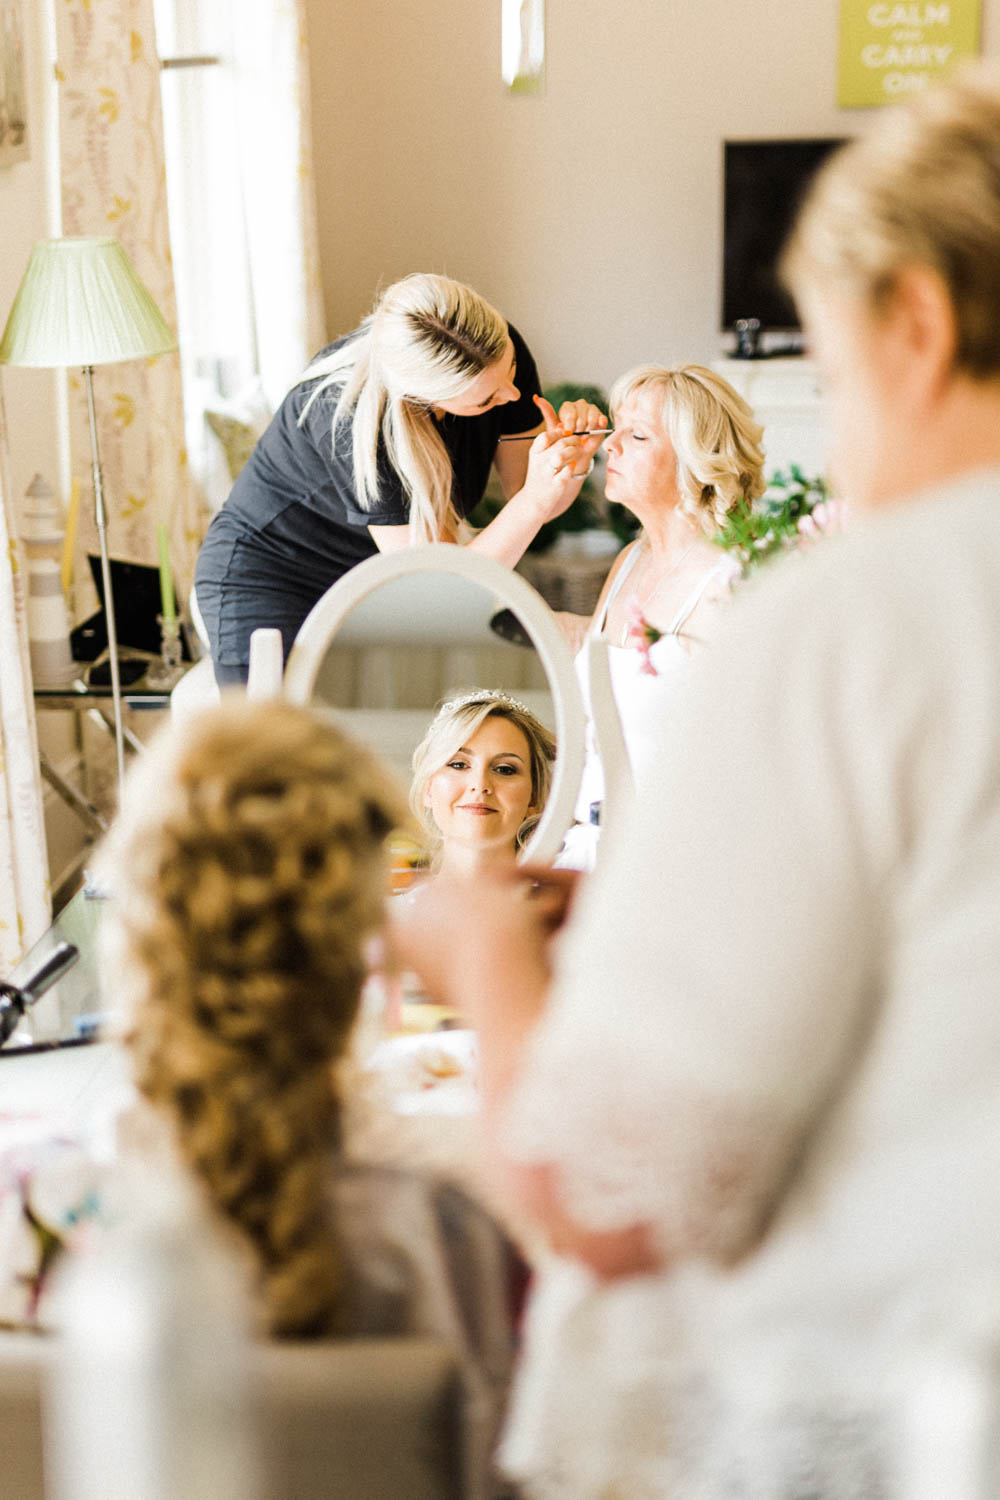 Special-Day-Photography-The-Manor-House-Hotel-Moreton-in-Marsh-Moreton-In-Marsh-Summer-Wedding-Bride-and-mother-of-the-bride-getting-ready-together.jpg